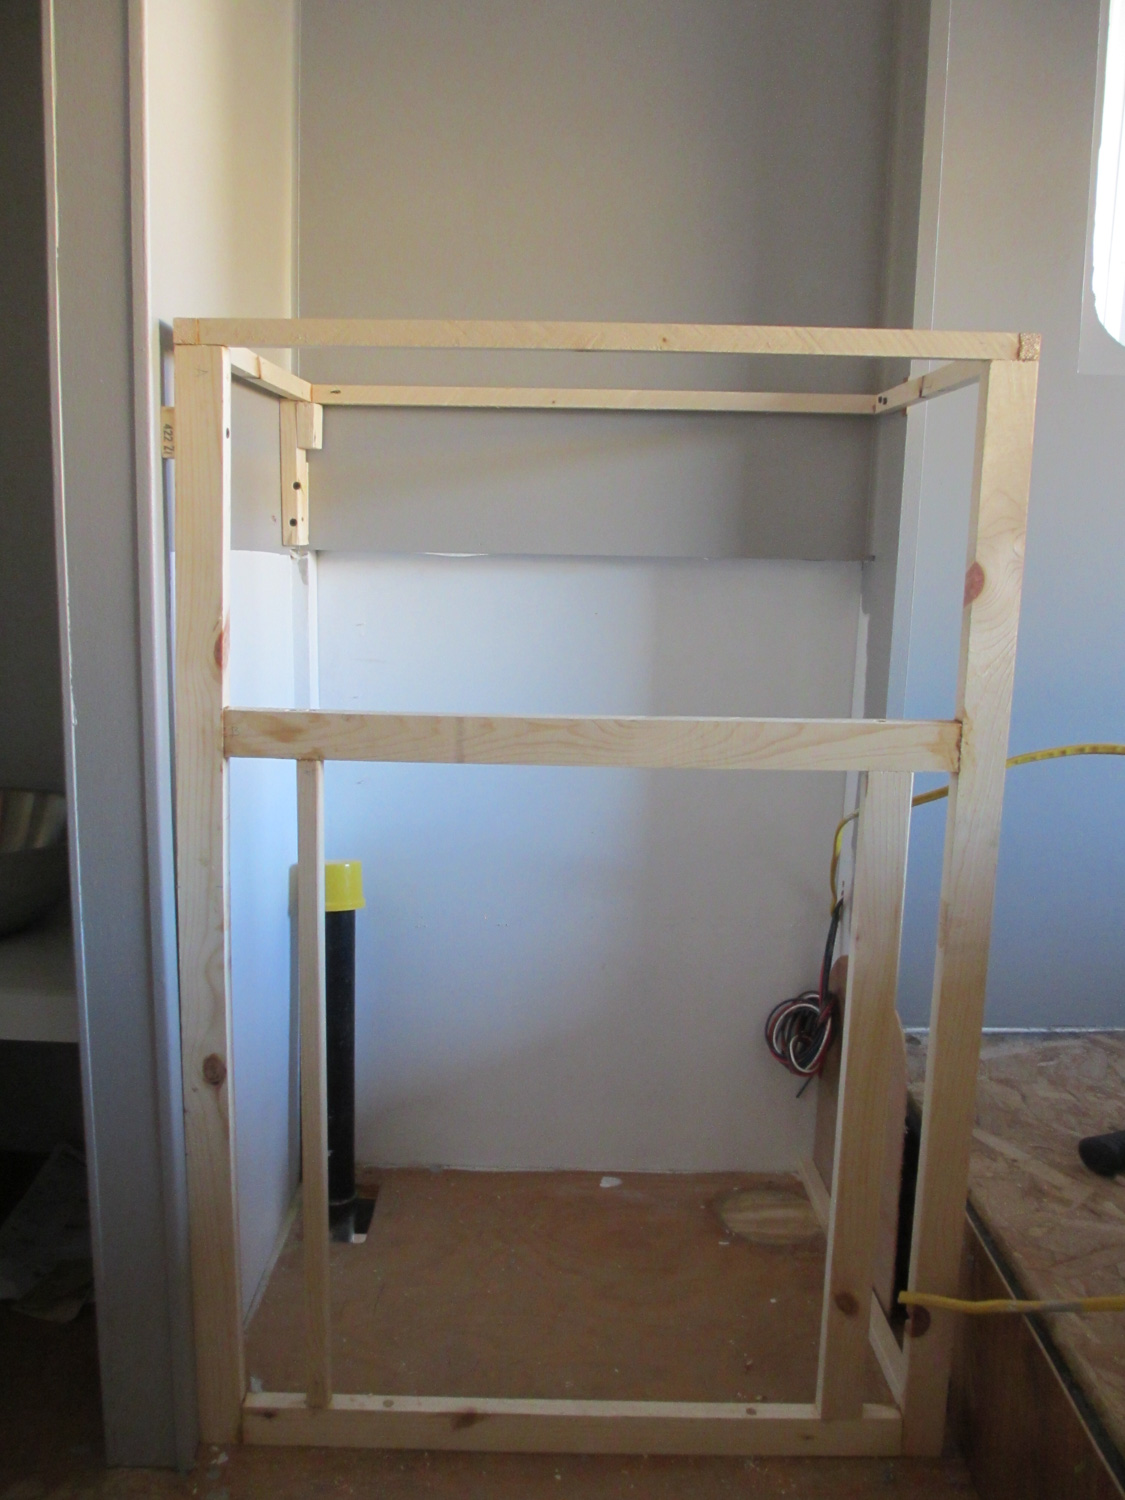 The frame of our new bathroom cabinet.